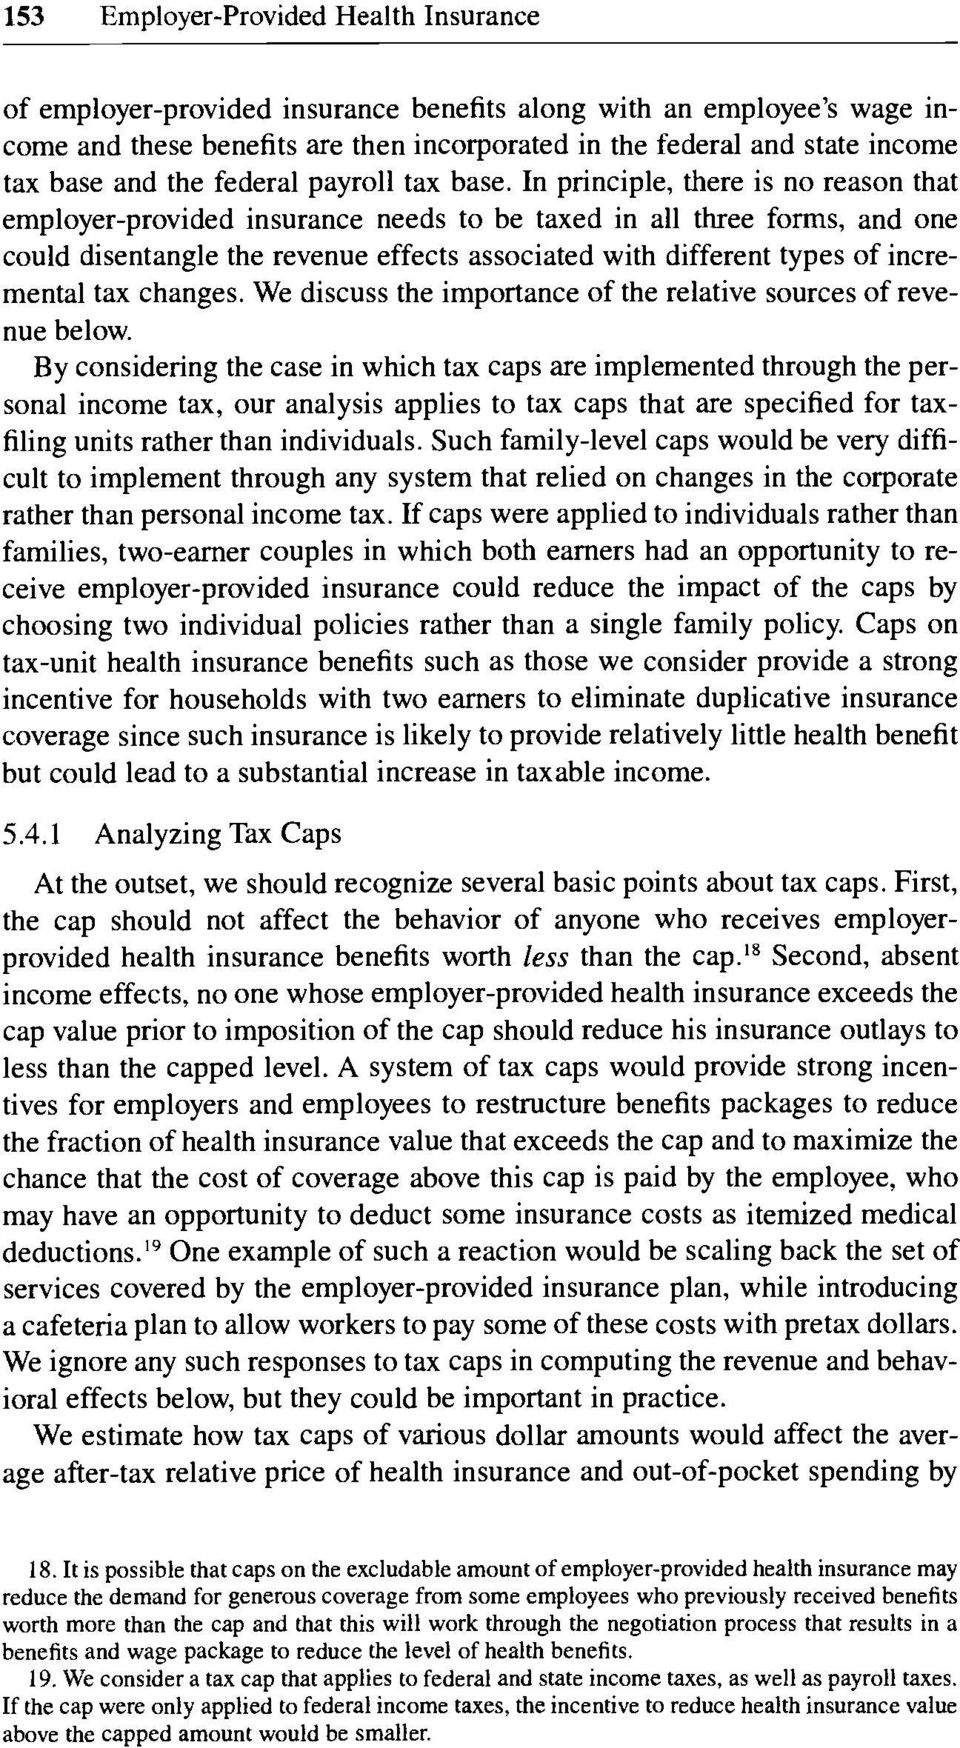 In principle, there is no reason that employer-provided insurance needs to be taxed in all three forms, and one could disentangle the revenue effects associated with different types of incremental